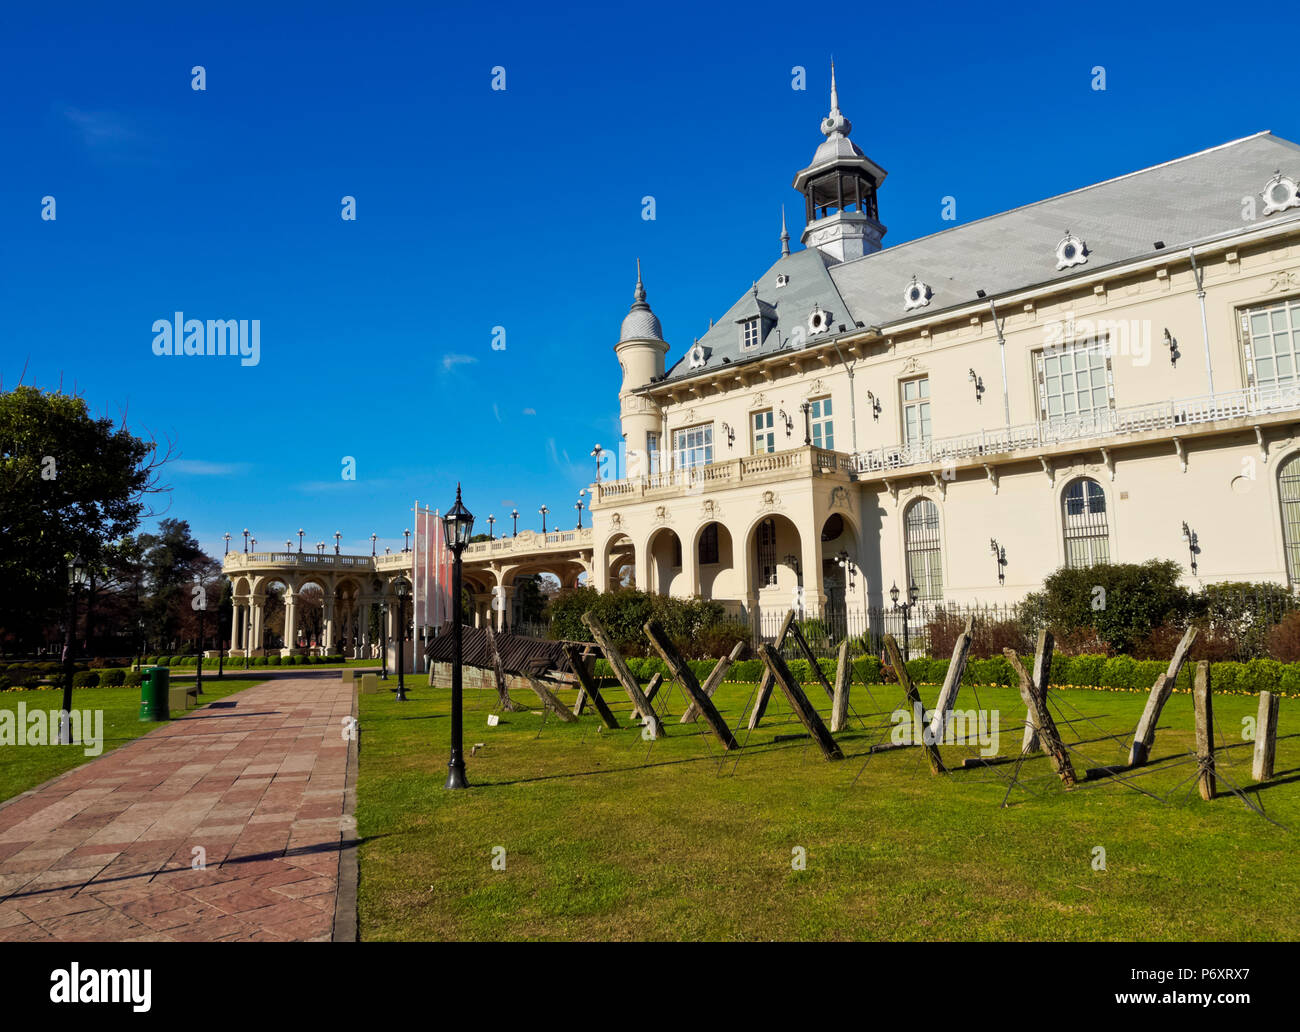 Argentina, Buenos Aires Province, Tigre, View of the Municipal Museum of Fine Art. - Stock Image